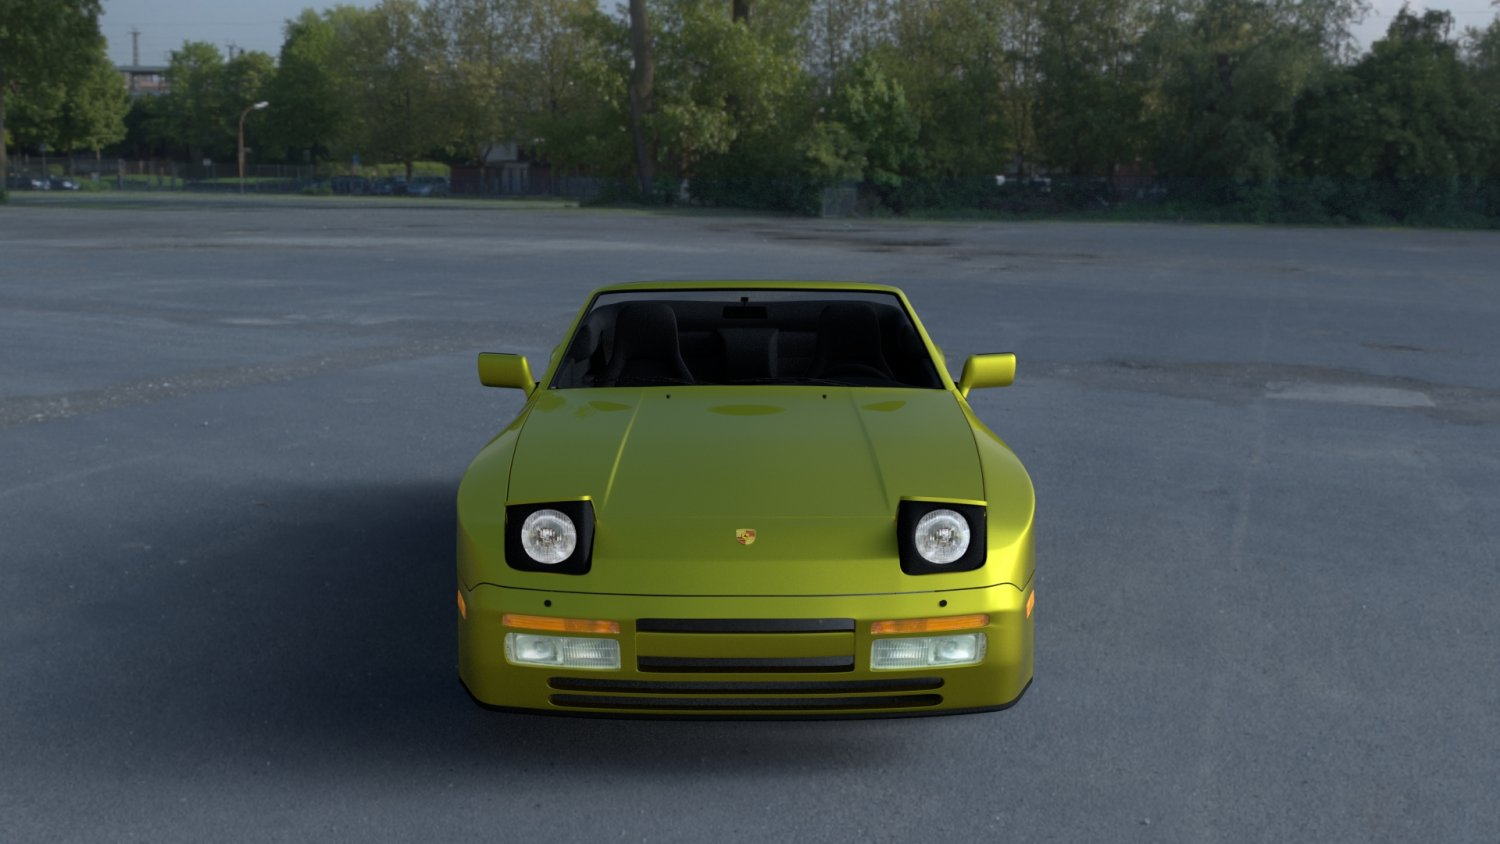 Porsche 944 Cabriolet W Interior Top Down Hdri 3d Model In Sport Cars 3dexport